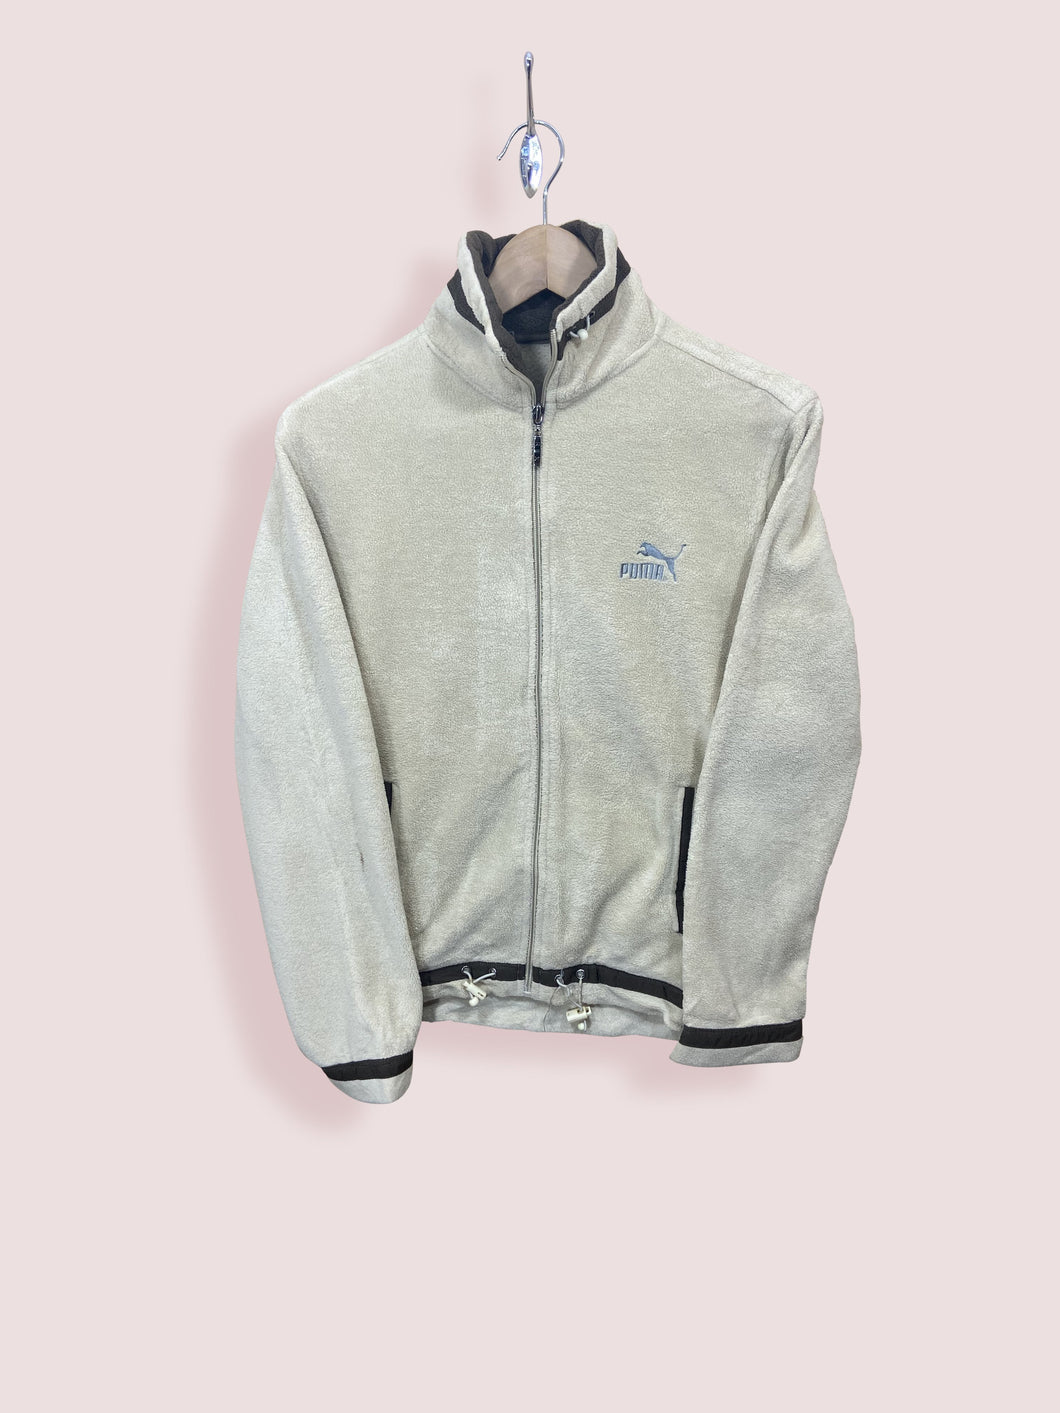 S Vintage Puma Full Zip Fleece - DURT